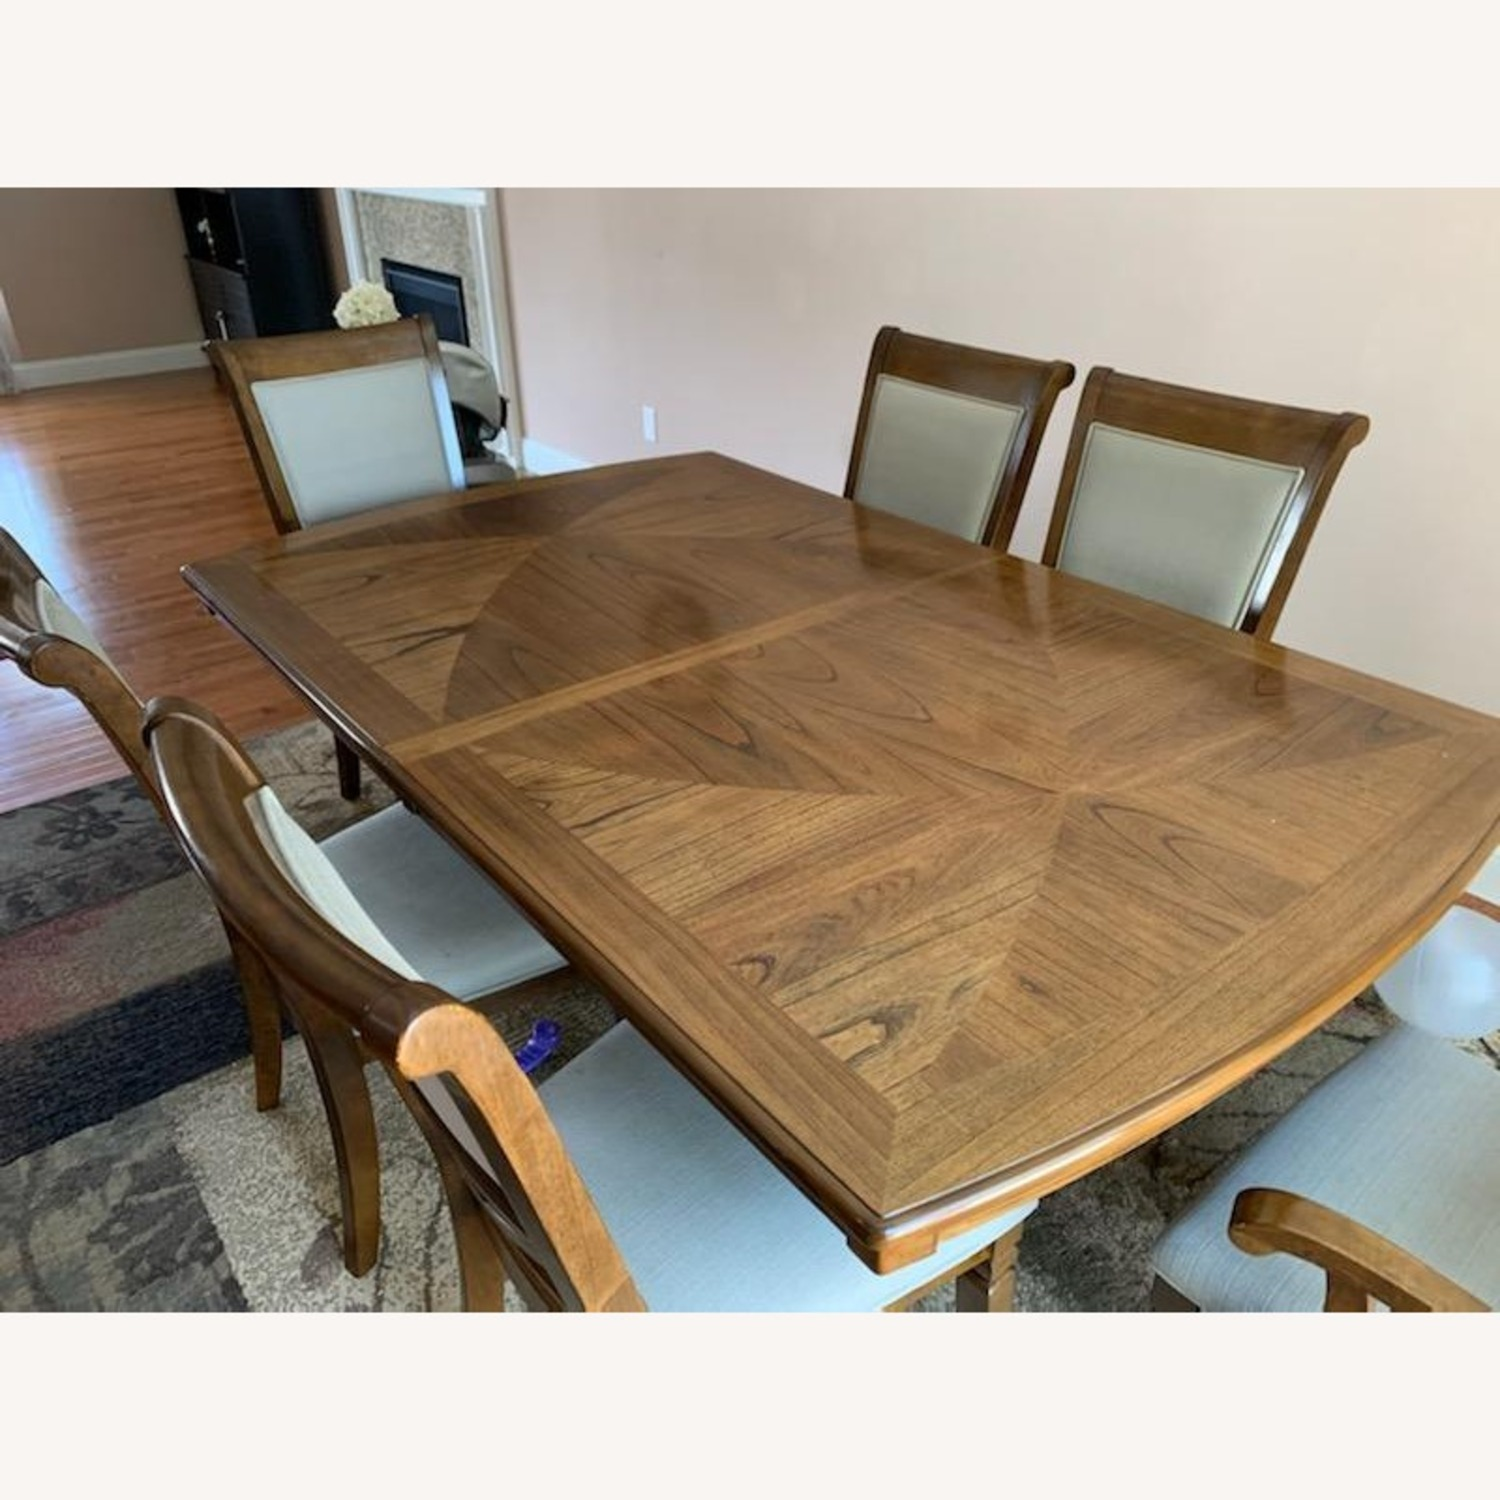 Raymour & Flanigan Dining Table set with 6 chairs - image-1